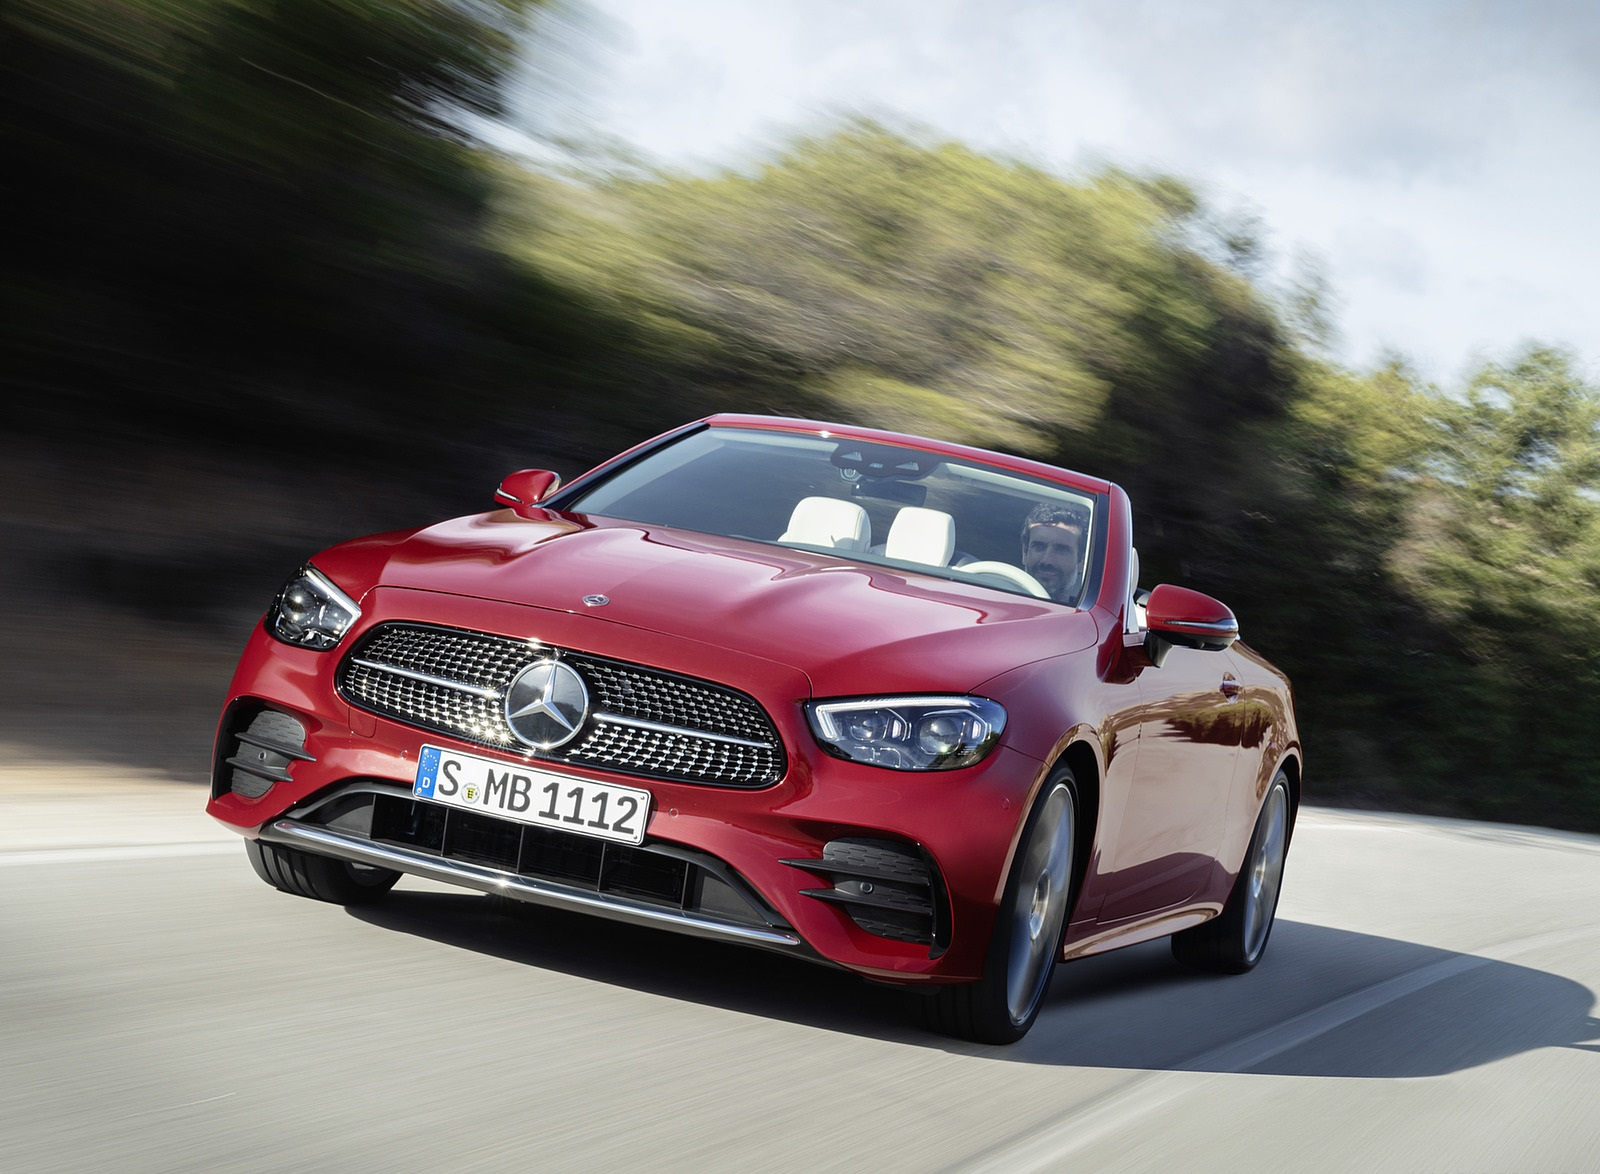 2021 Mercedes-Benz E 450 4MATIC Cabriolet AMG Line (Color: Designo Hyacinth Red Metallic) Front Wallpapers (6)